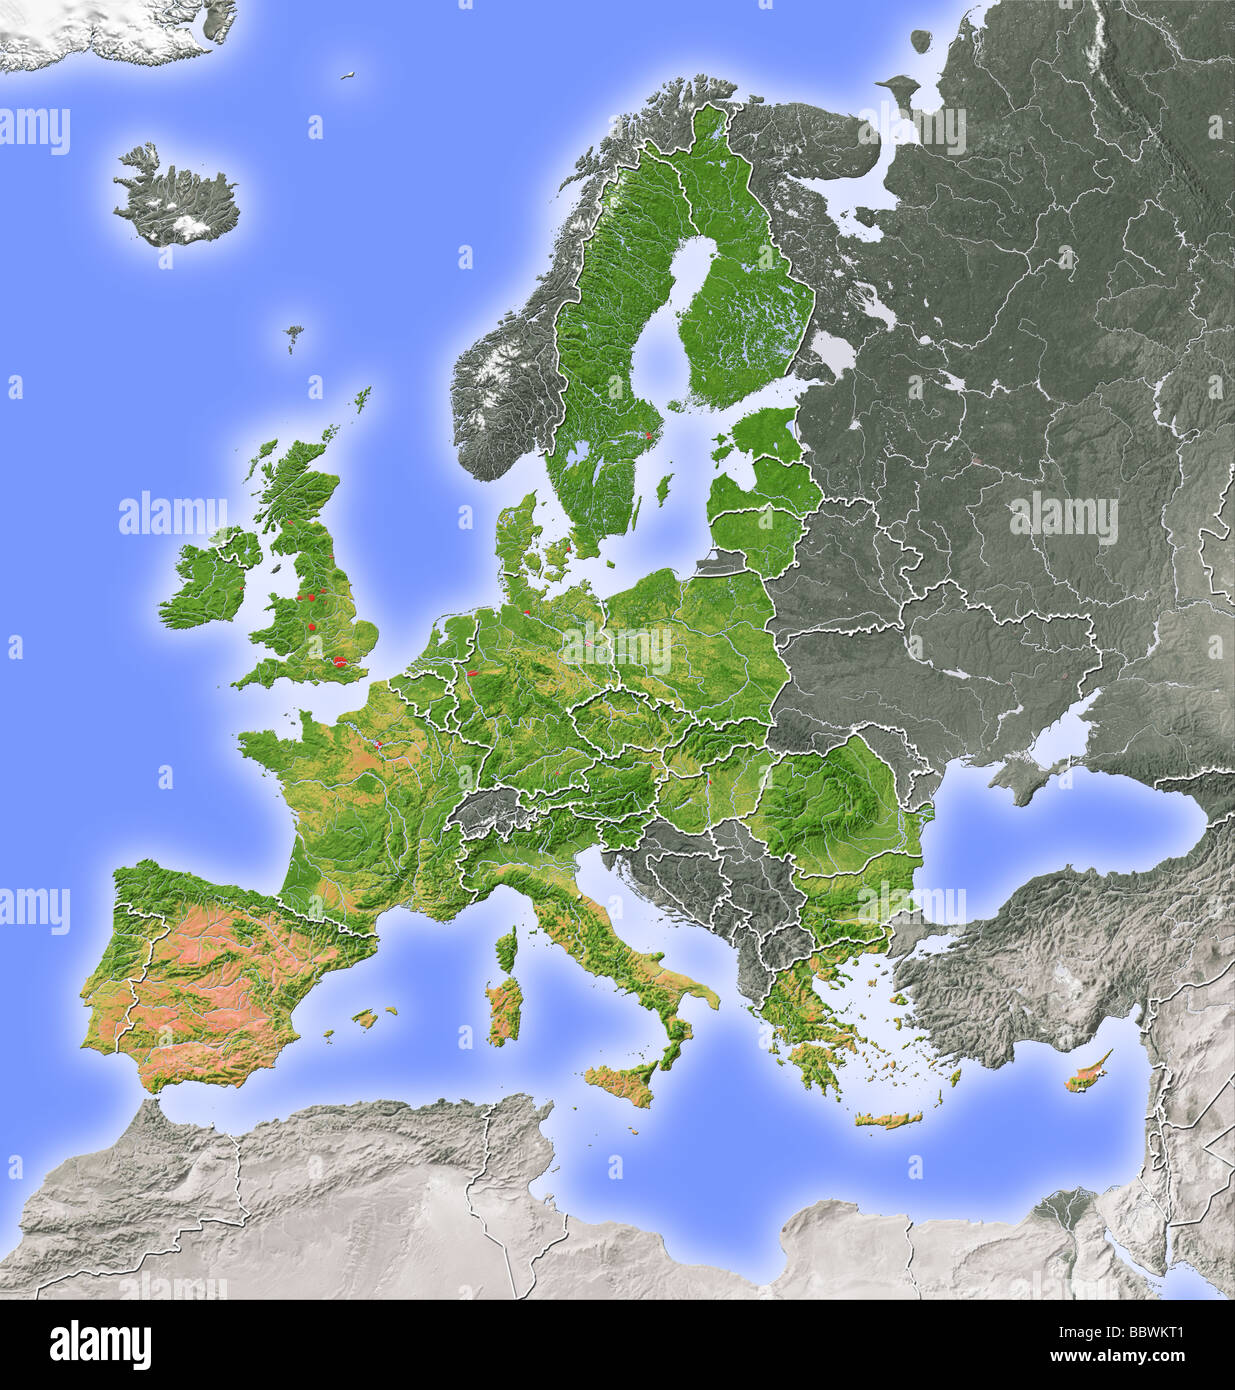 European Union, relief map - Stock Image